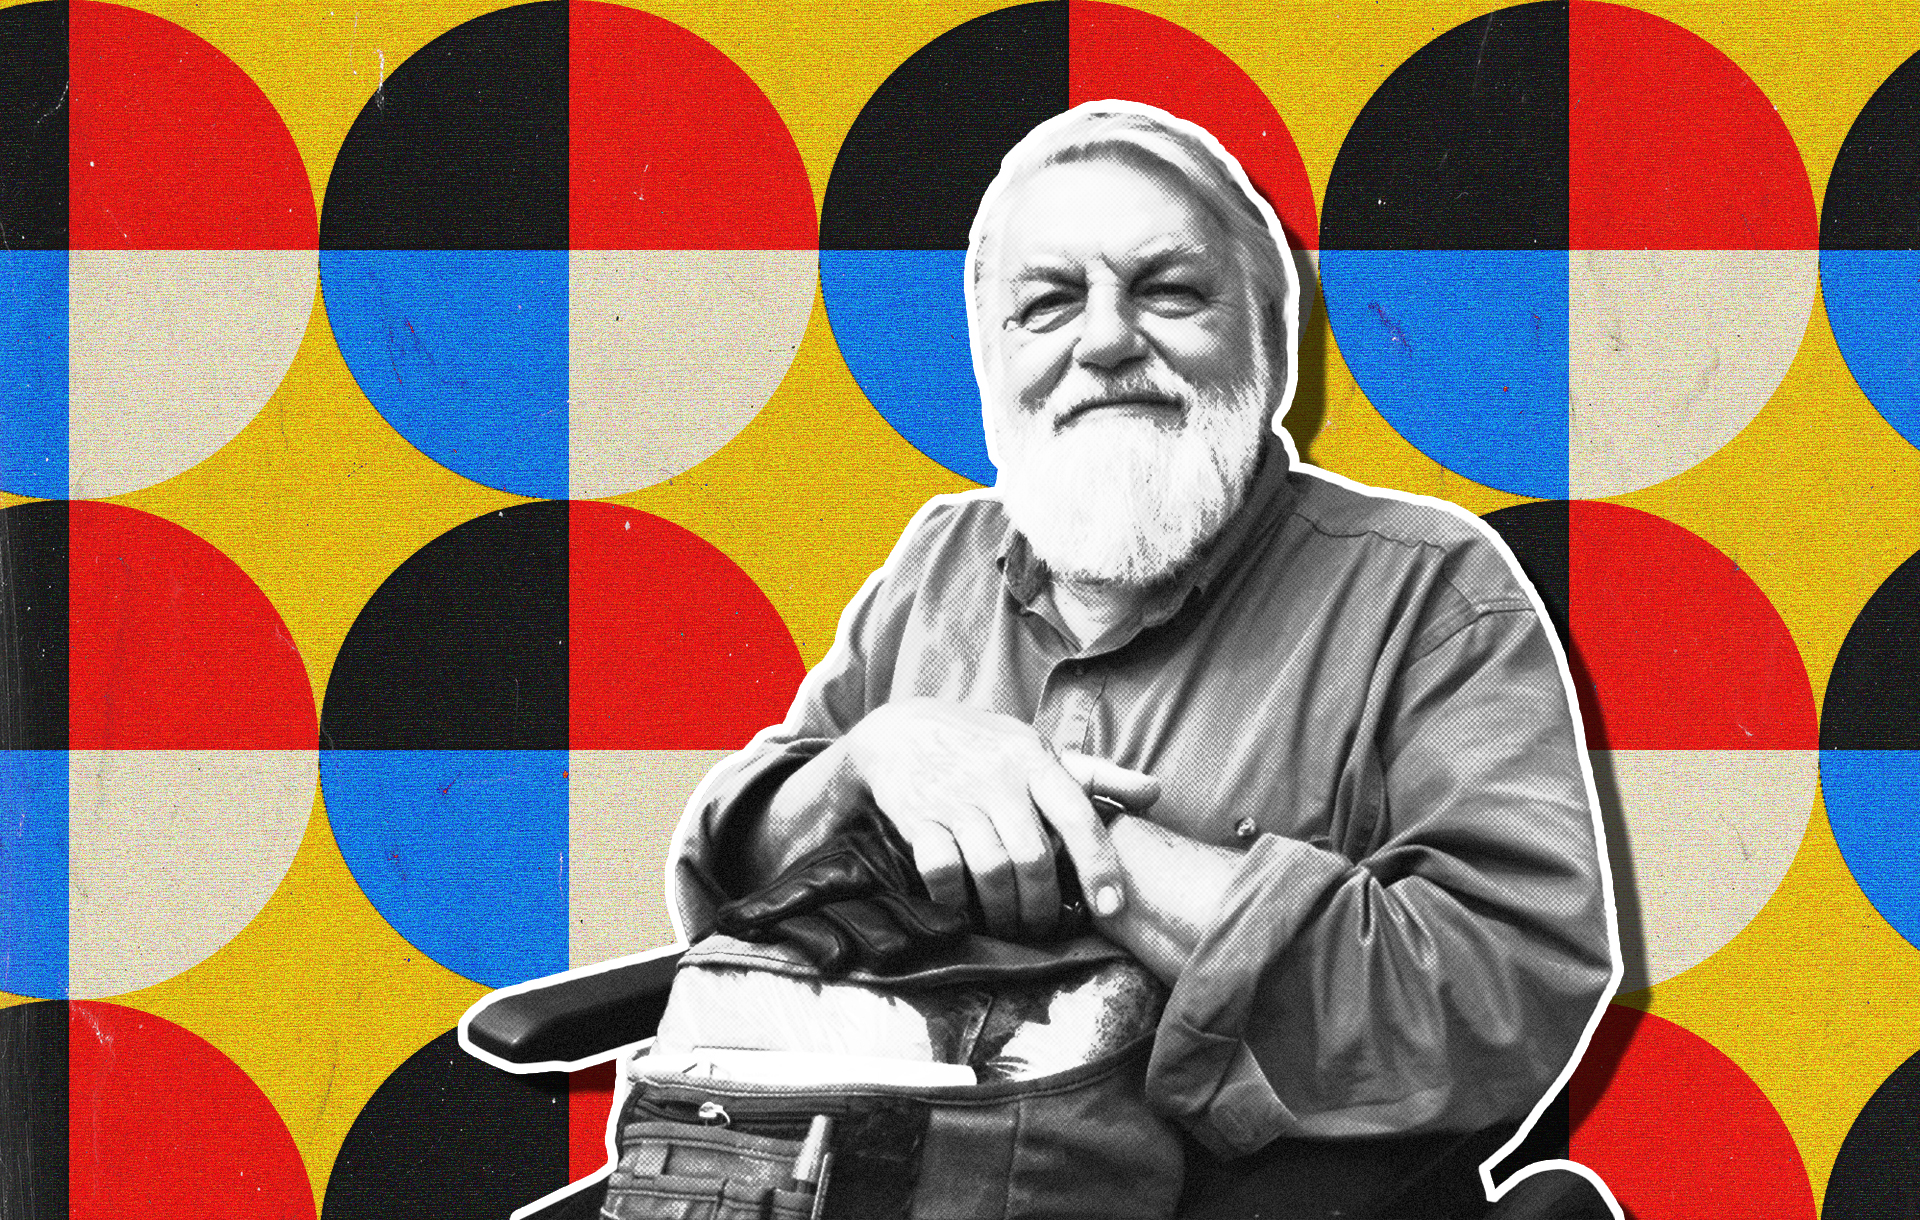 Robert Wyatt - The Saddest Voice in Modern Music | Features | LIVING LIFE FEARLESS